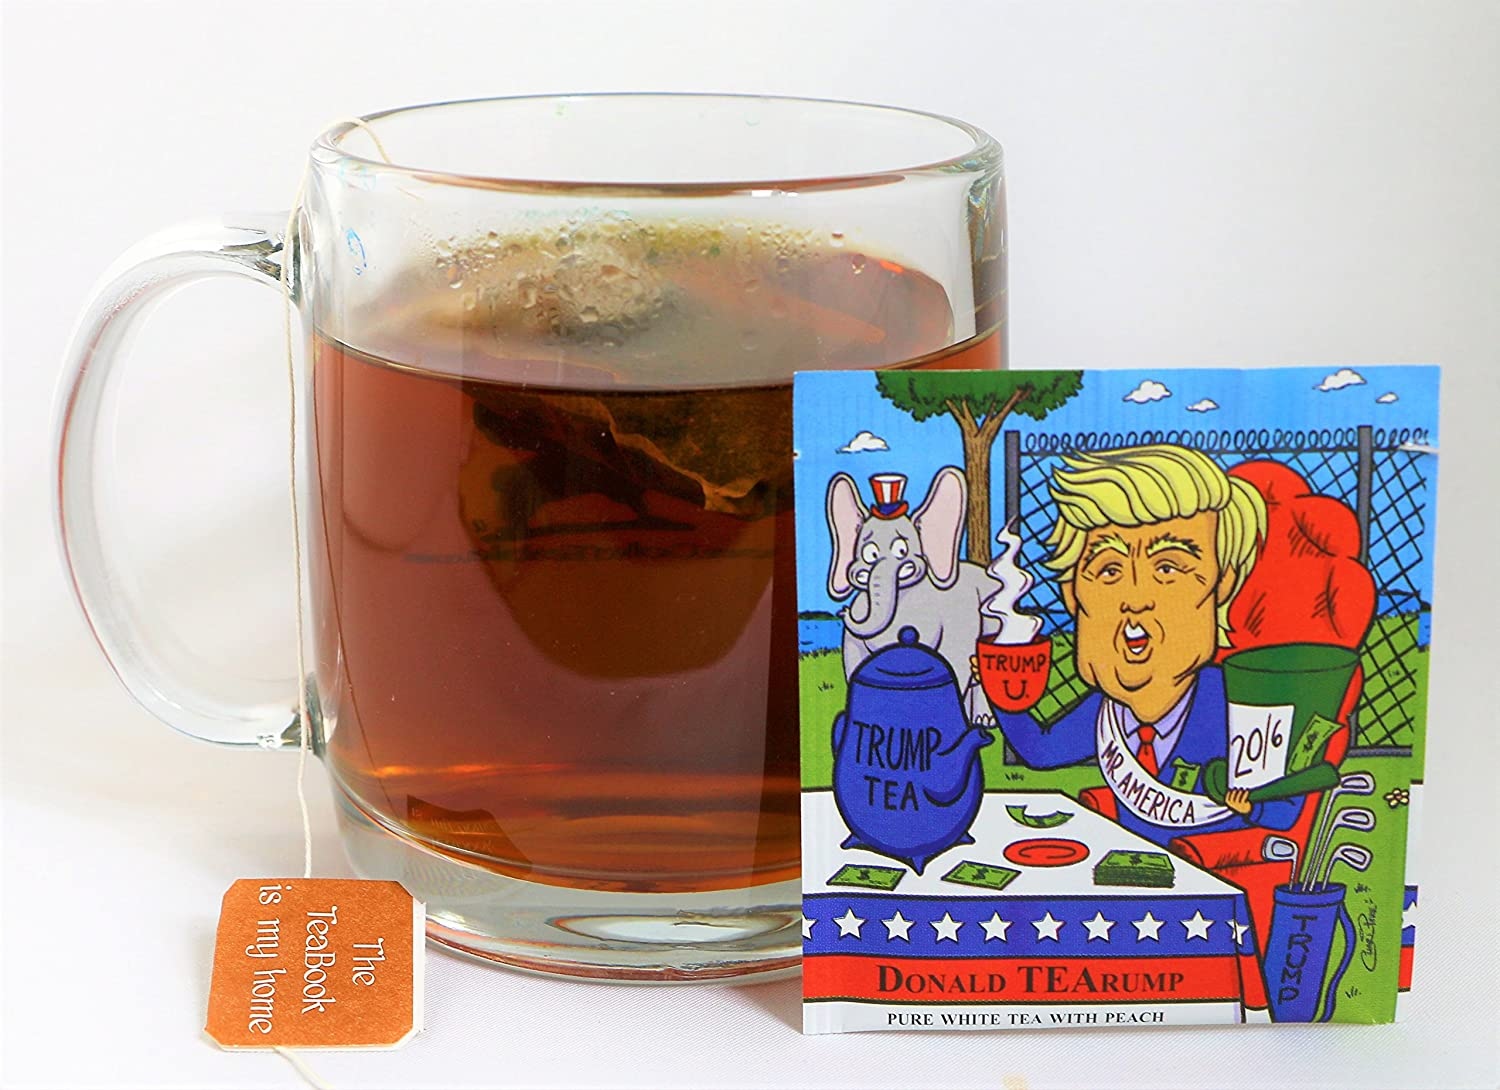 Amazon.com : Donald TEArump Organic Pure White Tea with Peach (Donald Trump) (20 Tea bags) : Grocery & Gourmet Food